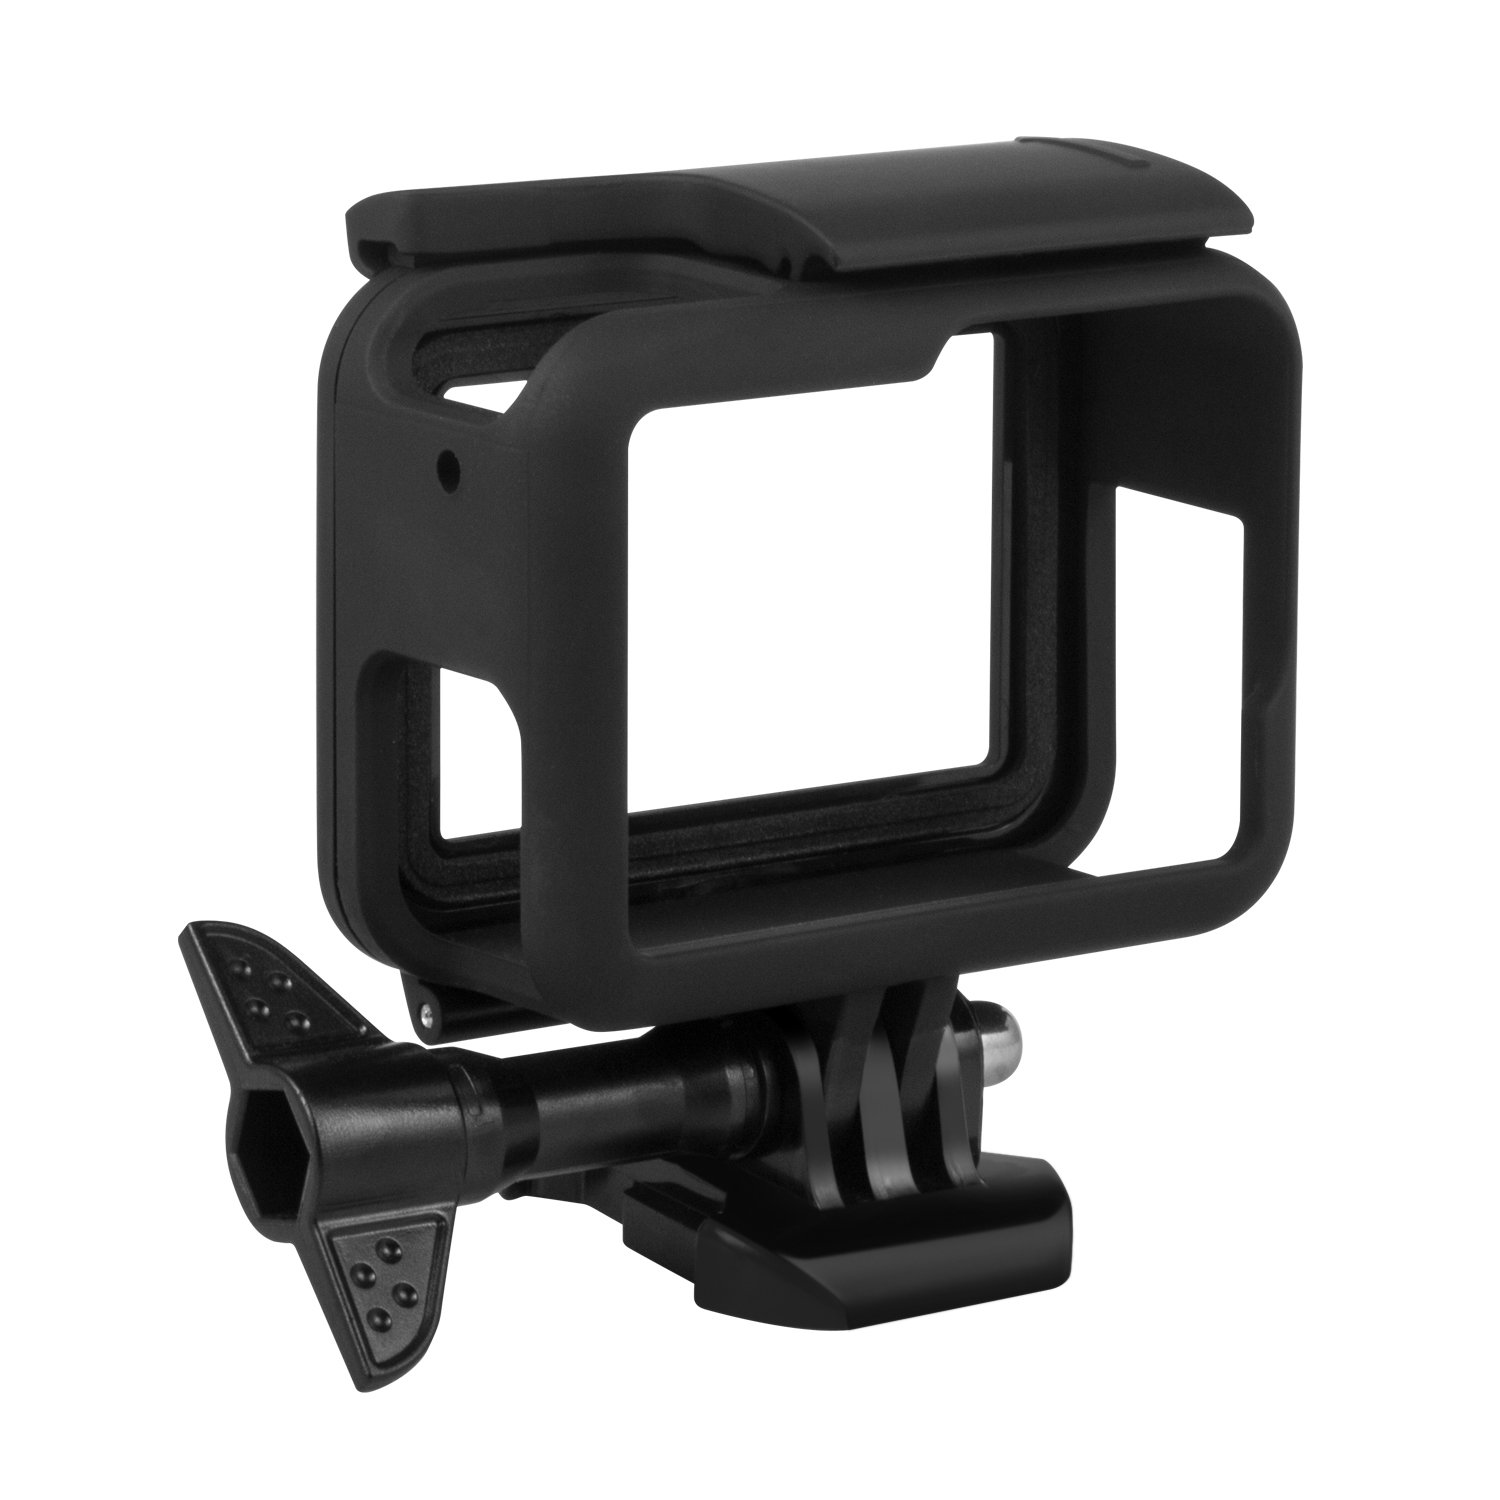 Kupton Frame for GoPro Hero HD (2018) / 6/5 Housing Border Protective Shell Case Accessories for Go Pro Hero6 Hero5 Black with Quick Pull Movable Socket and Screw (Black)